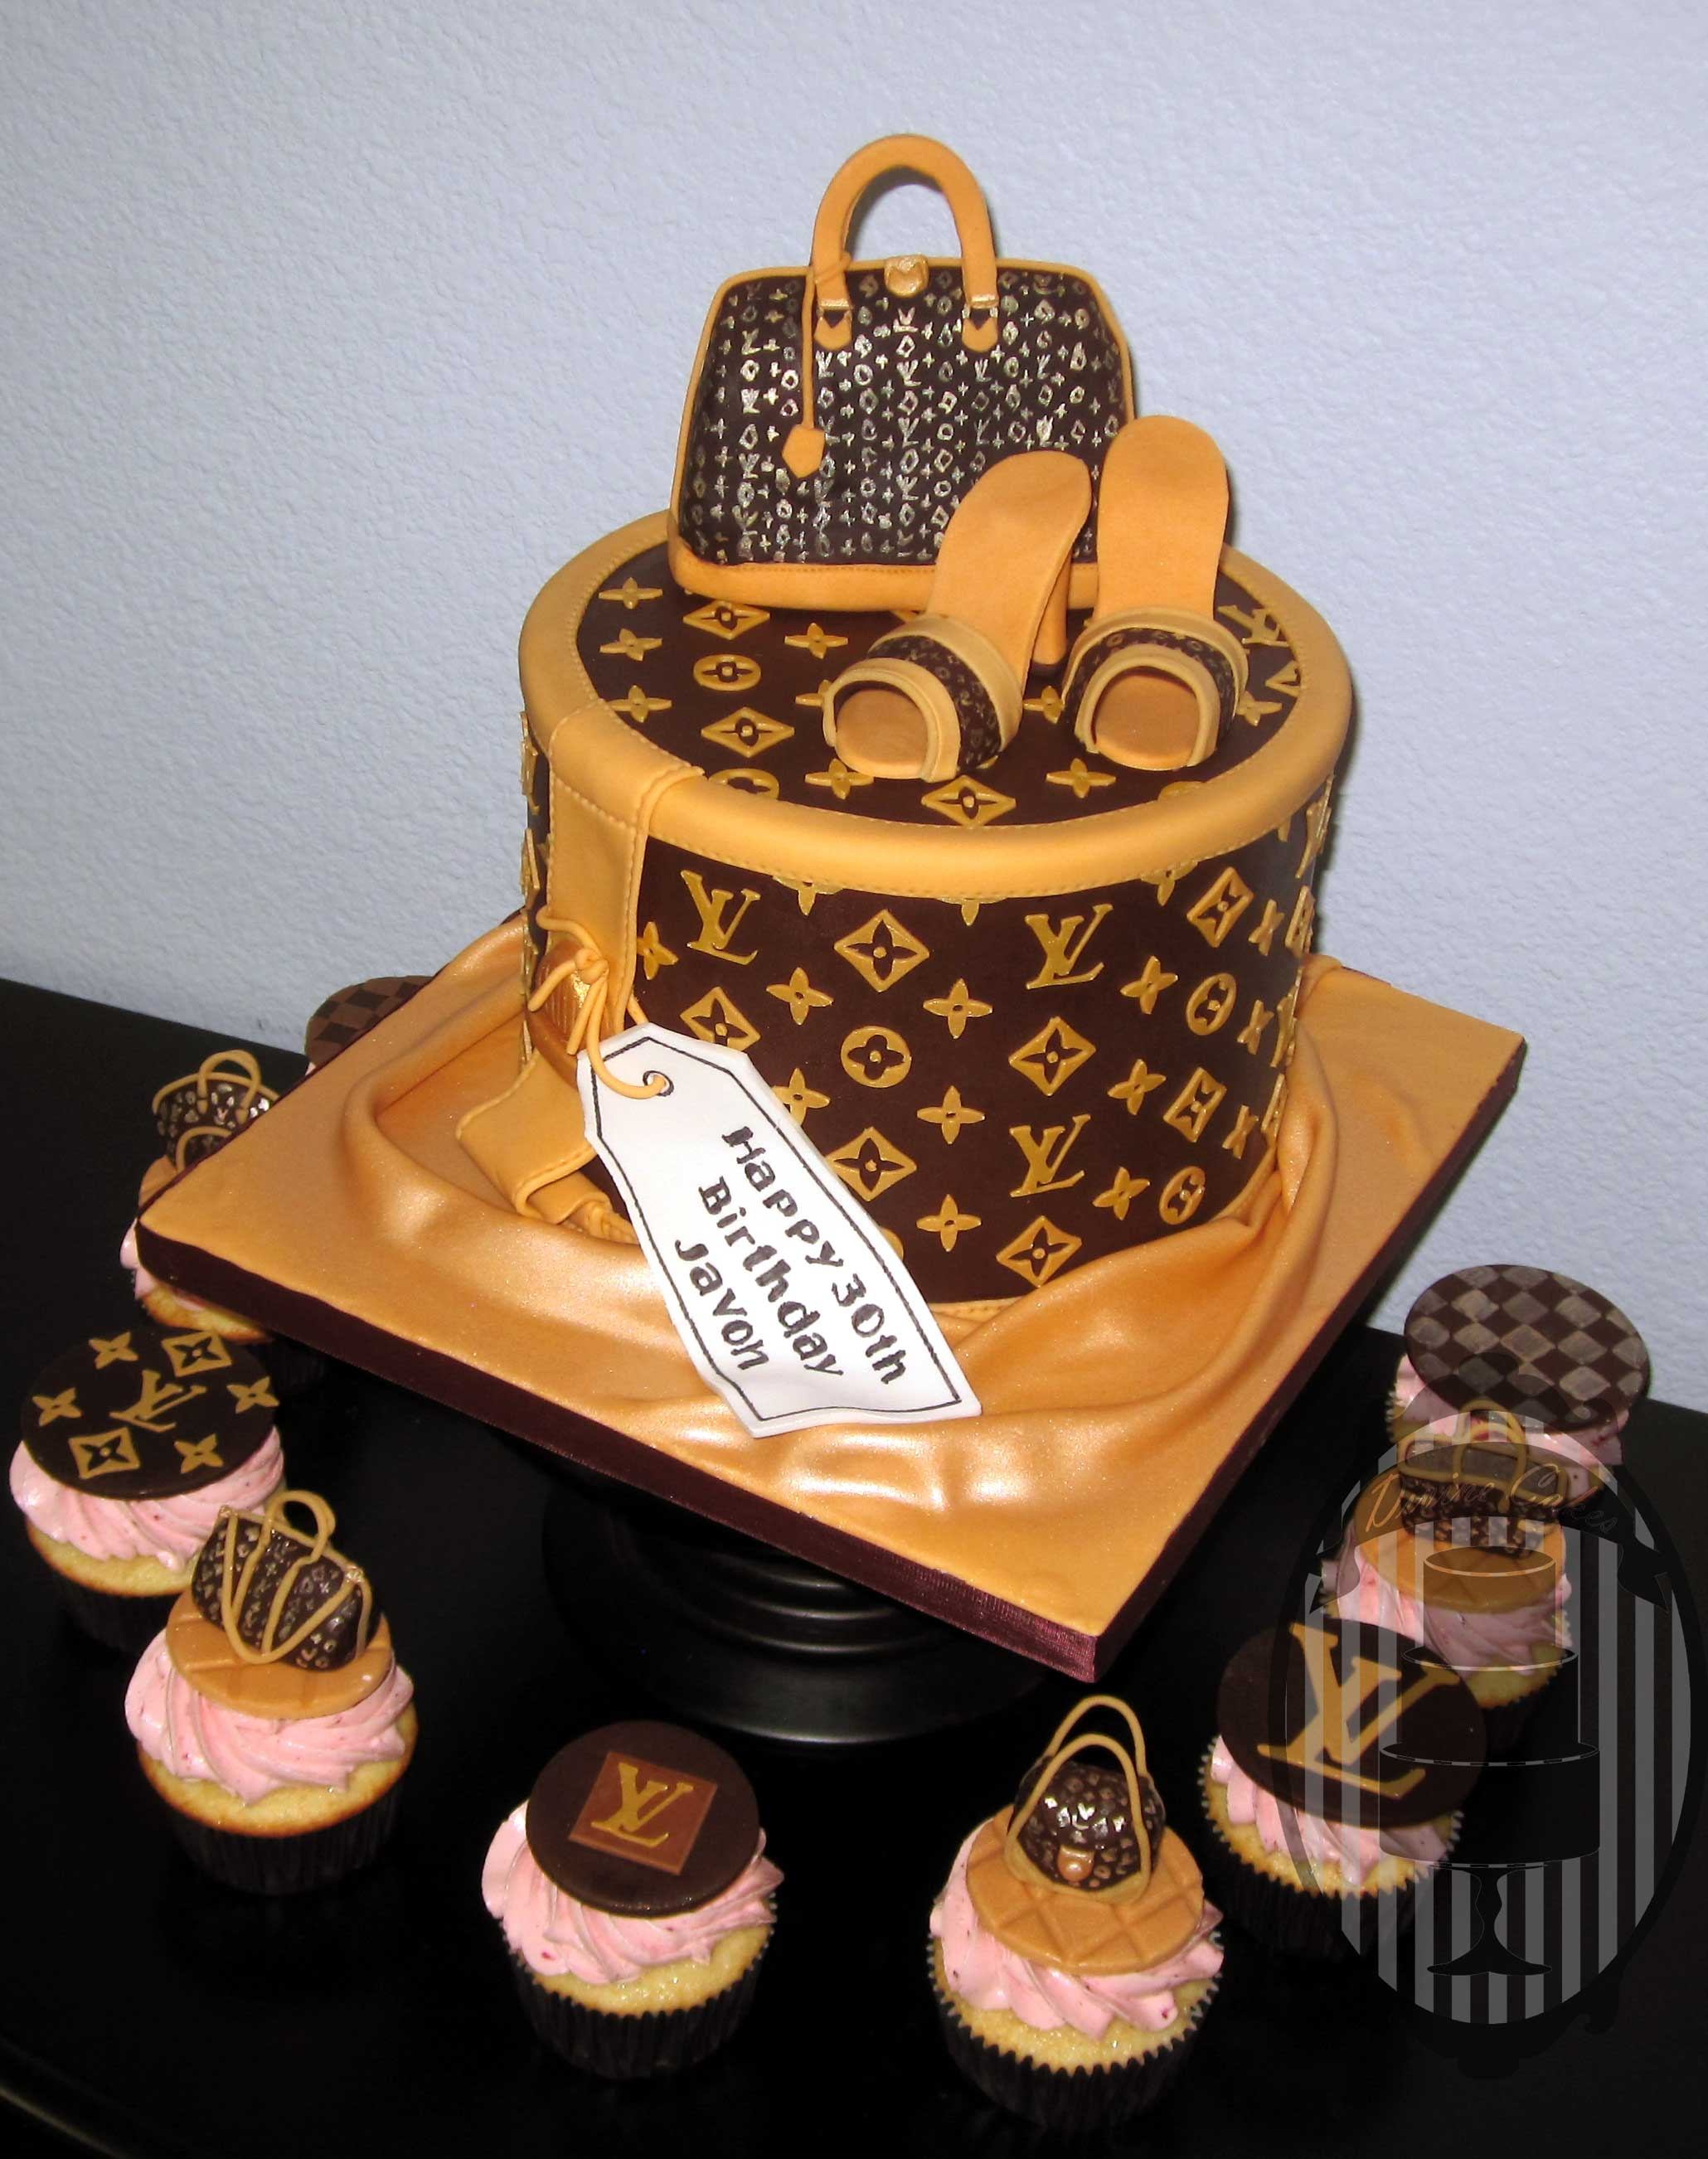 Louis Vuitton Birthday For one fashionable gal was turning 30 :) 29 forever!!!!